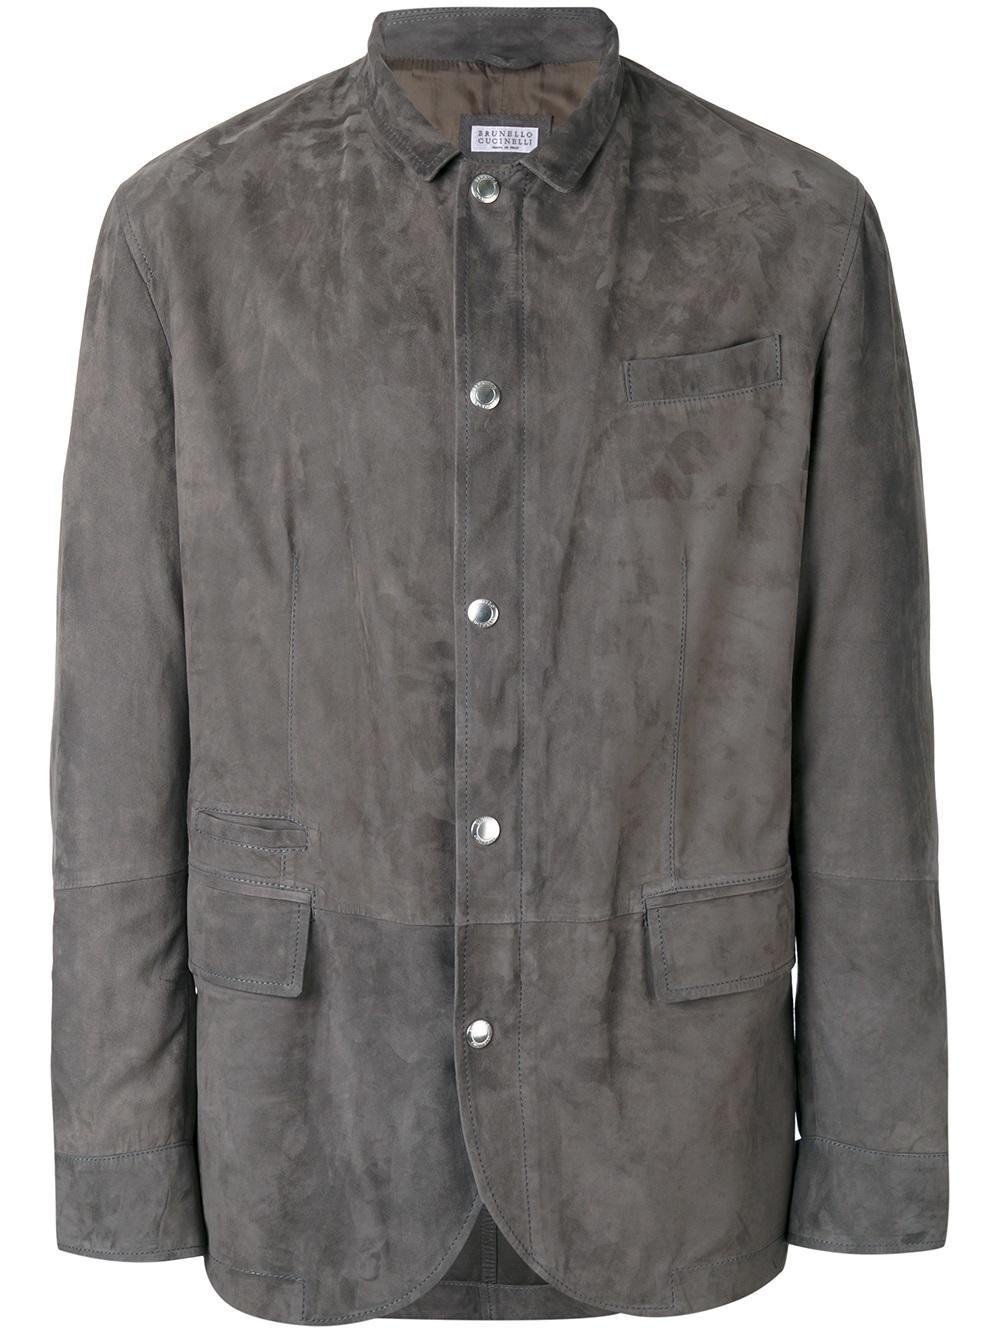 Lyst Brunello Cucinelli Suede Jacket In Gray For Men